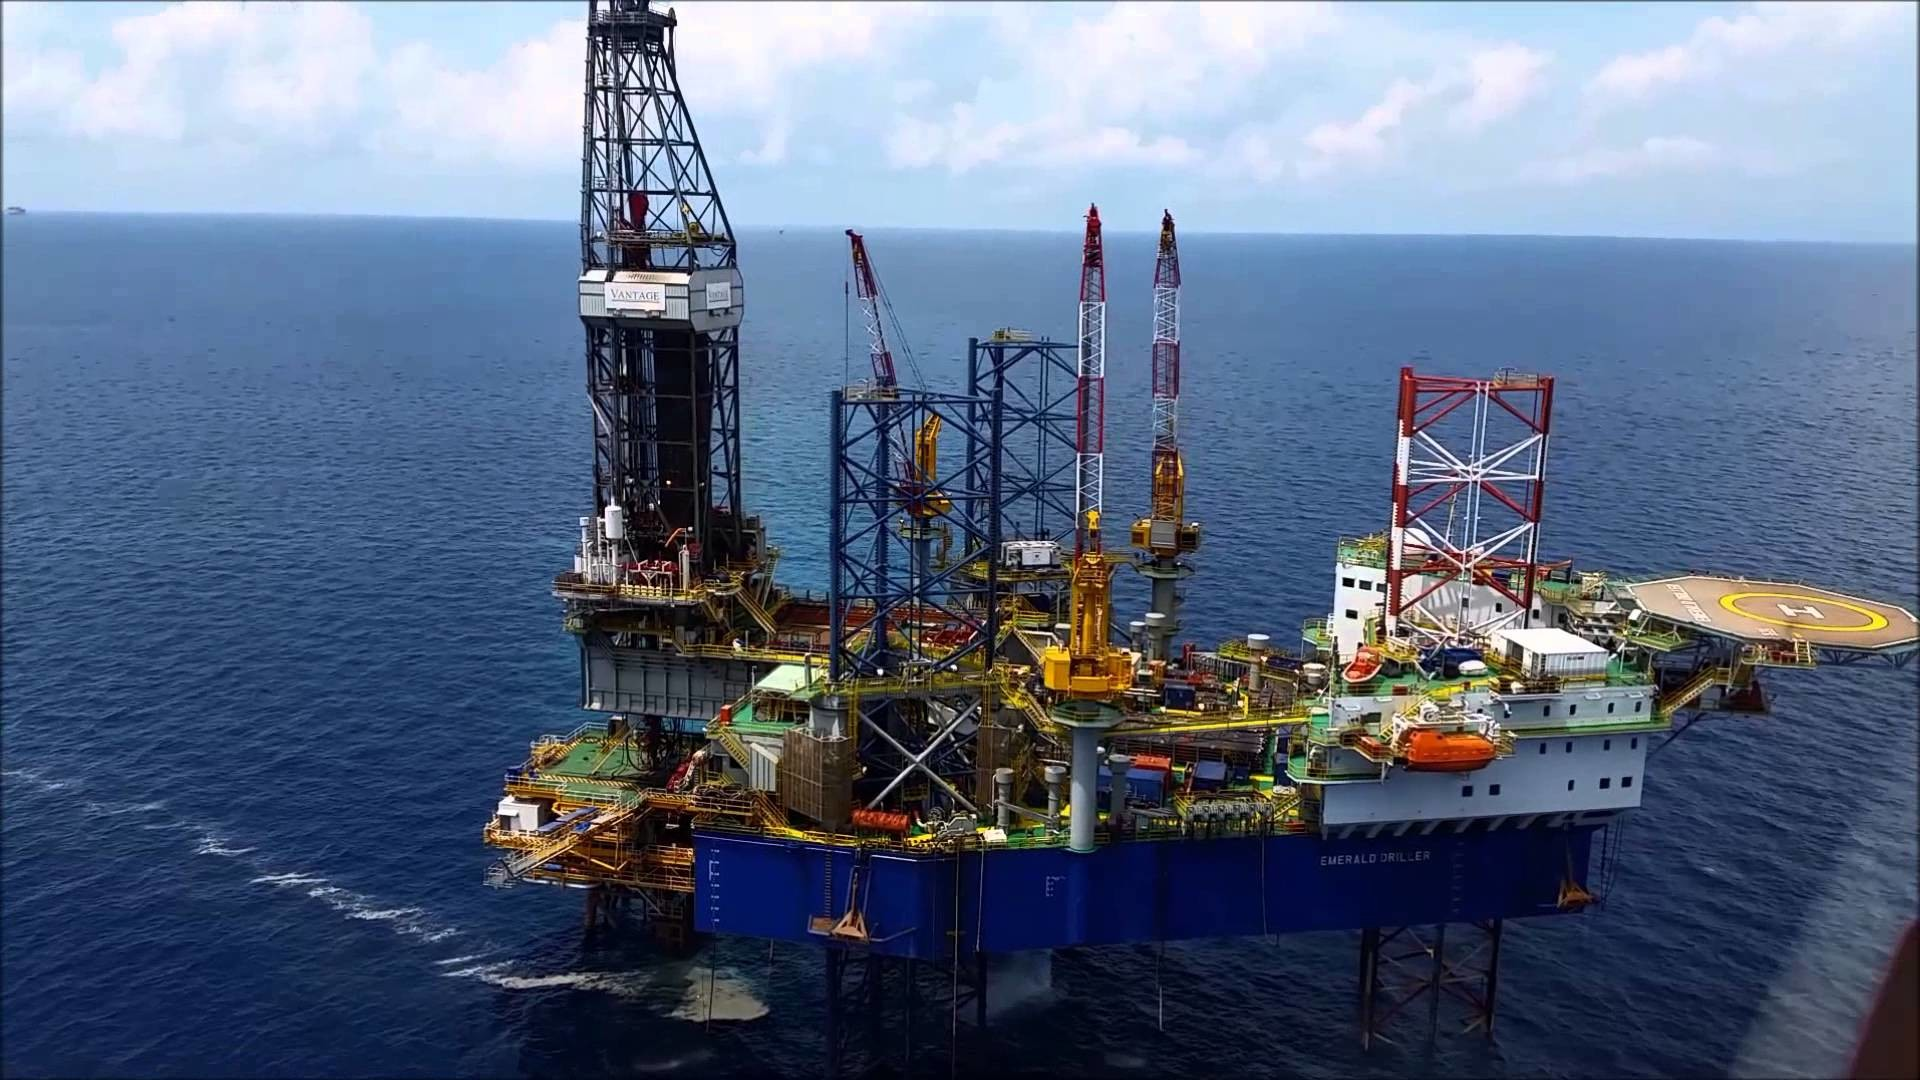 1920x1080 Oil rig in Gulf of Thailand-2015